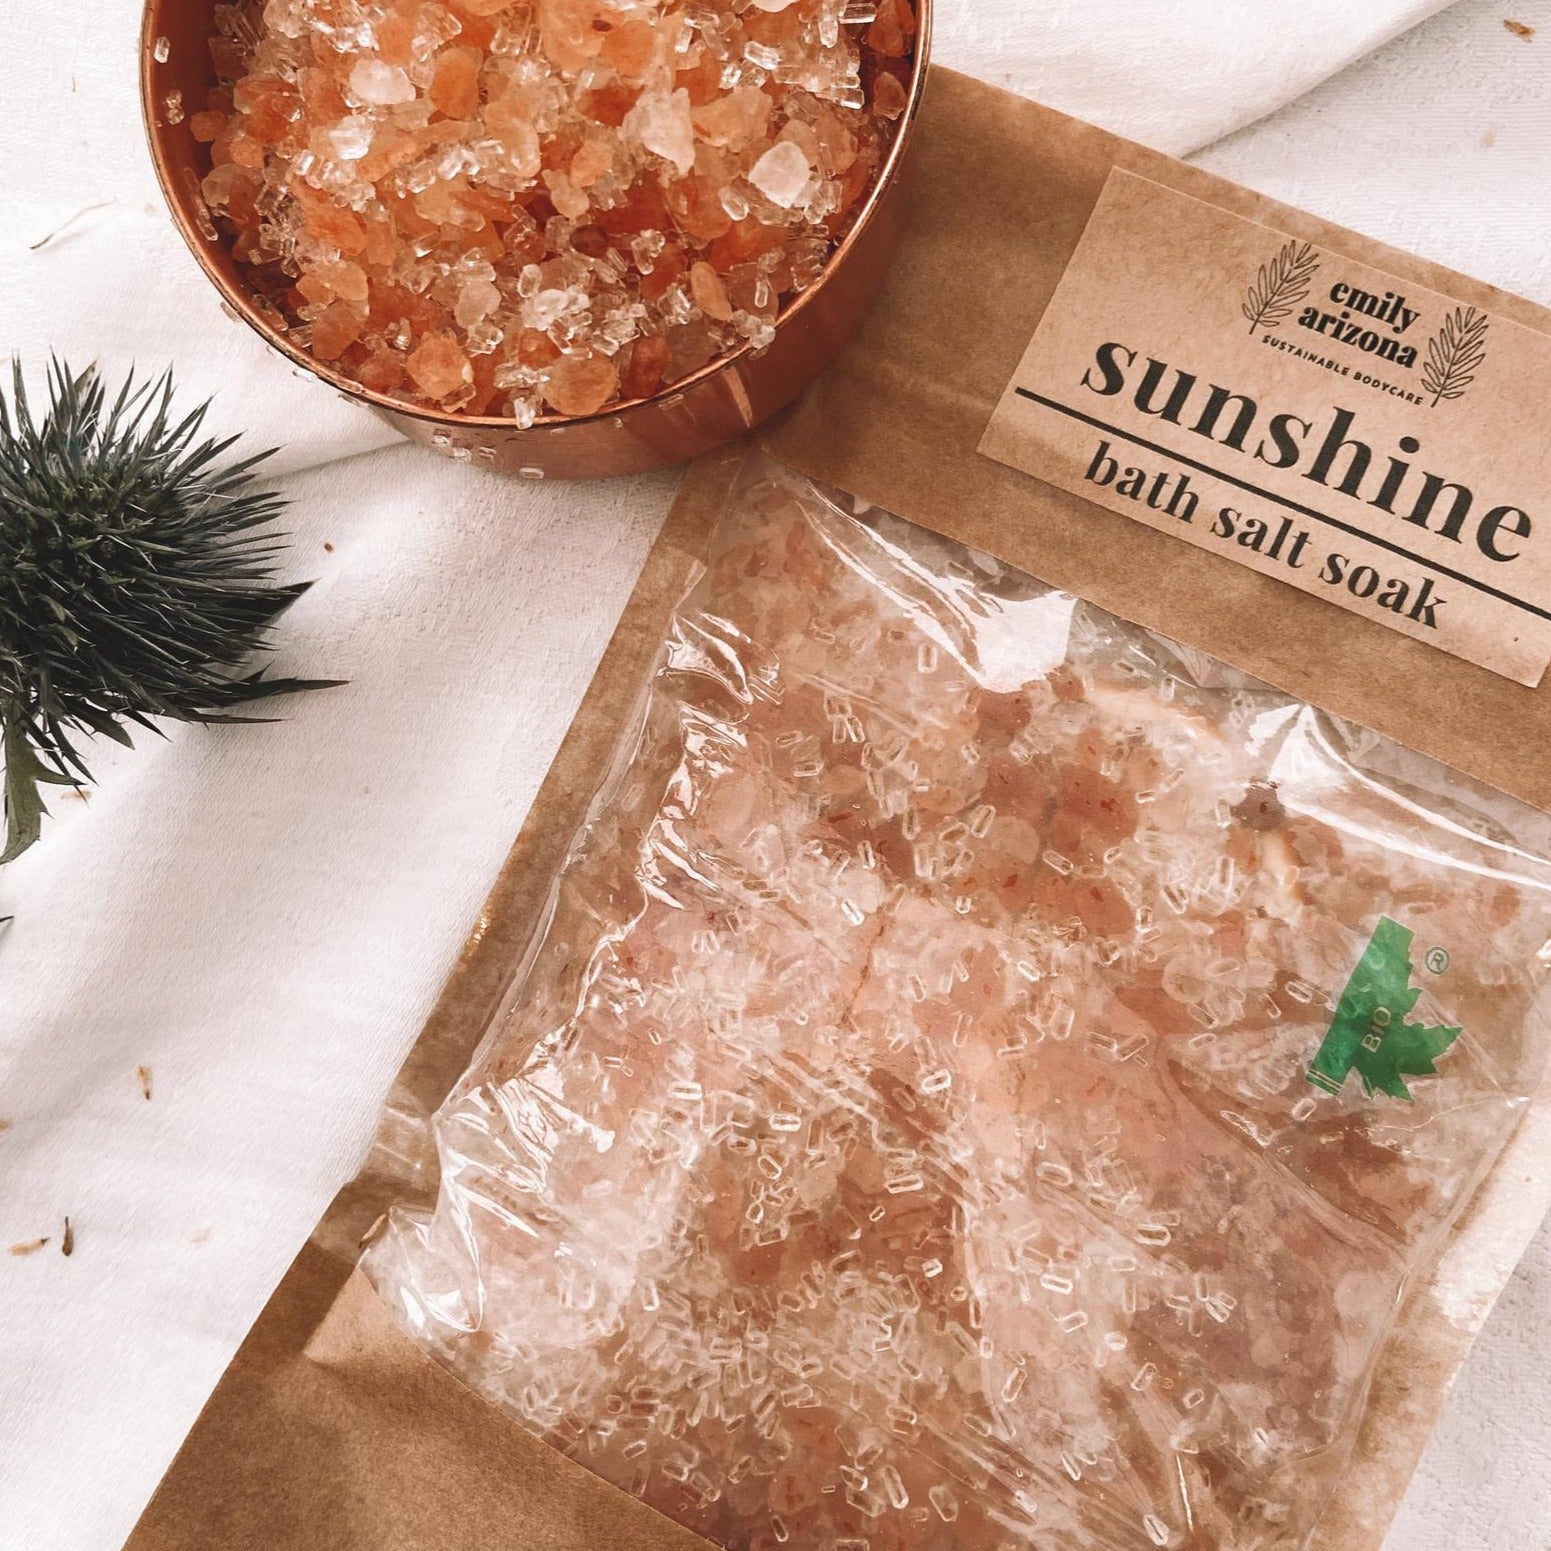 Sunshine Bath Salt Soak